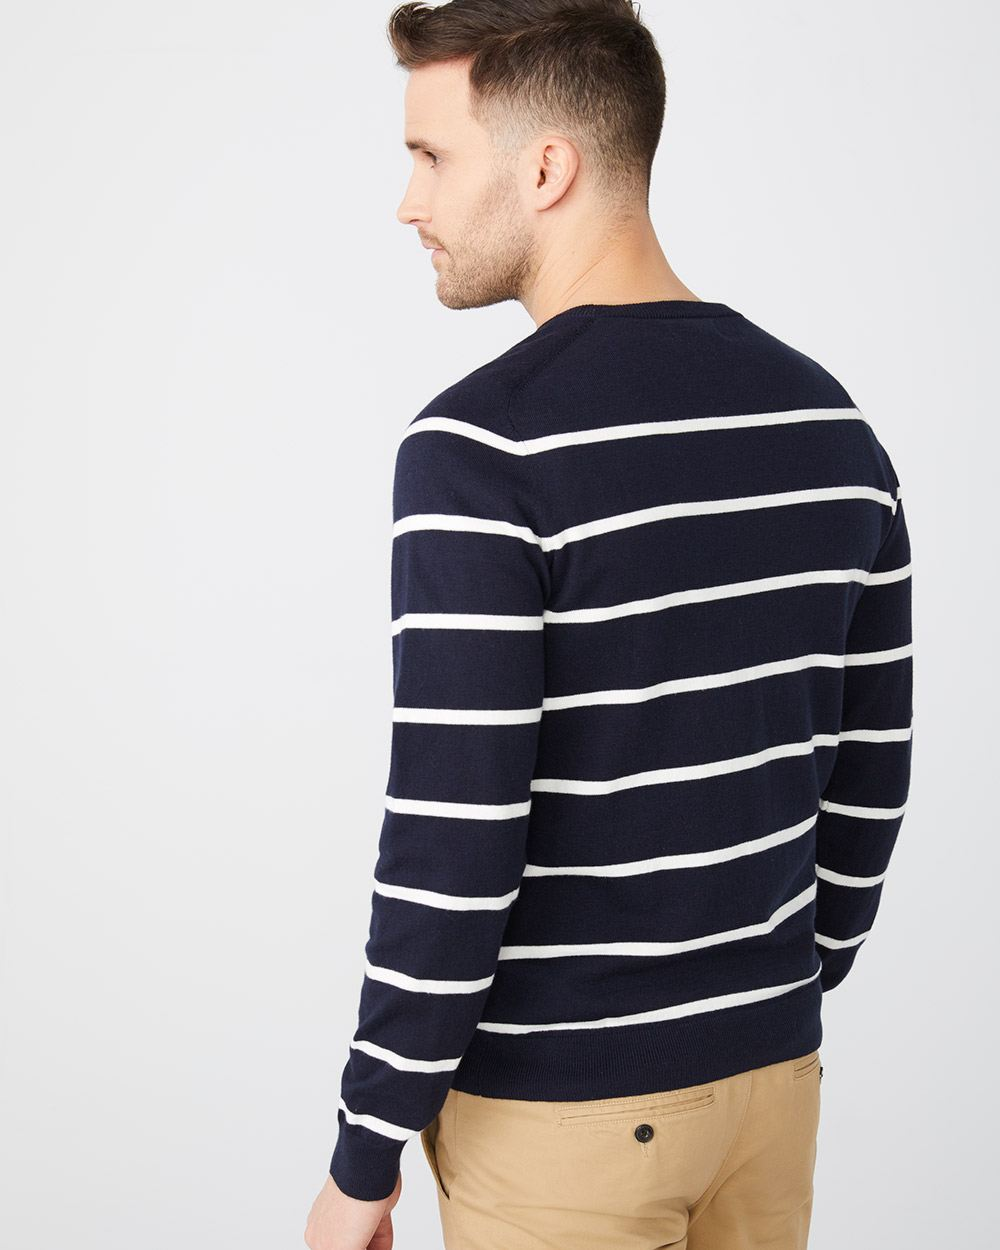 Stiped Crew-neck sweater